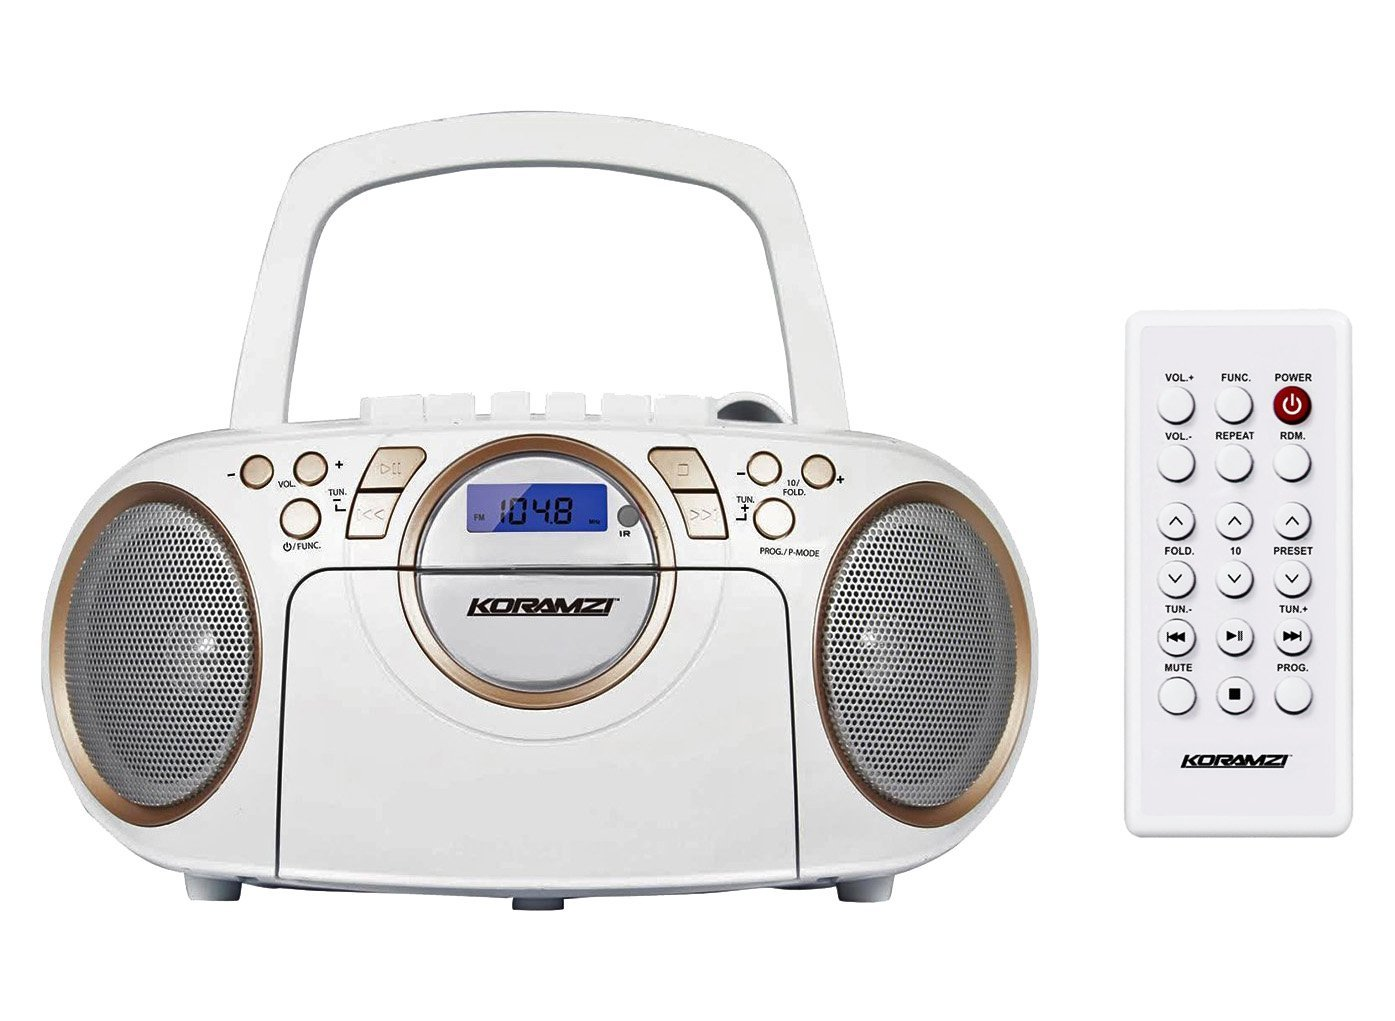 Koramzi Portable CD Boombox Full Range Stereo Sound System w/Top-Loading MP3 CD Player, Cassette Player and Recorder, AM/FM Radio, USB Input, Headphone & AUX Jack w/Remote Control- CD705CWH(White)